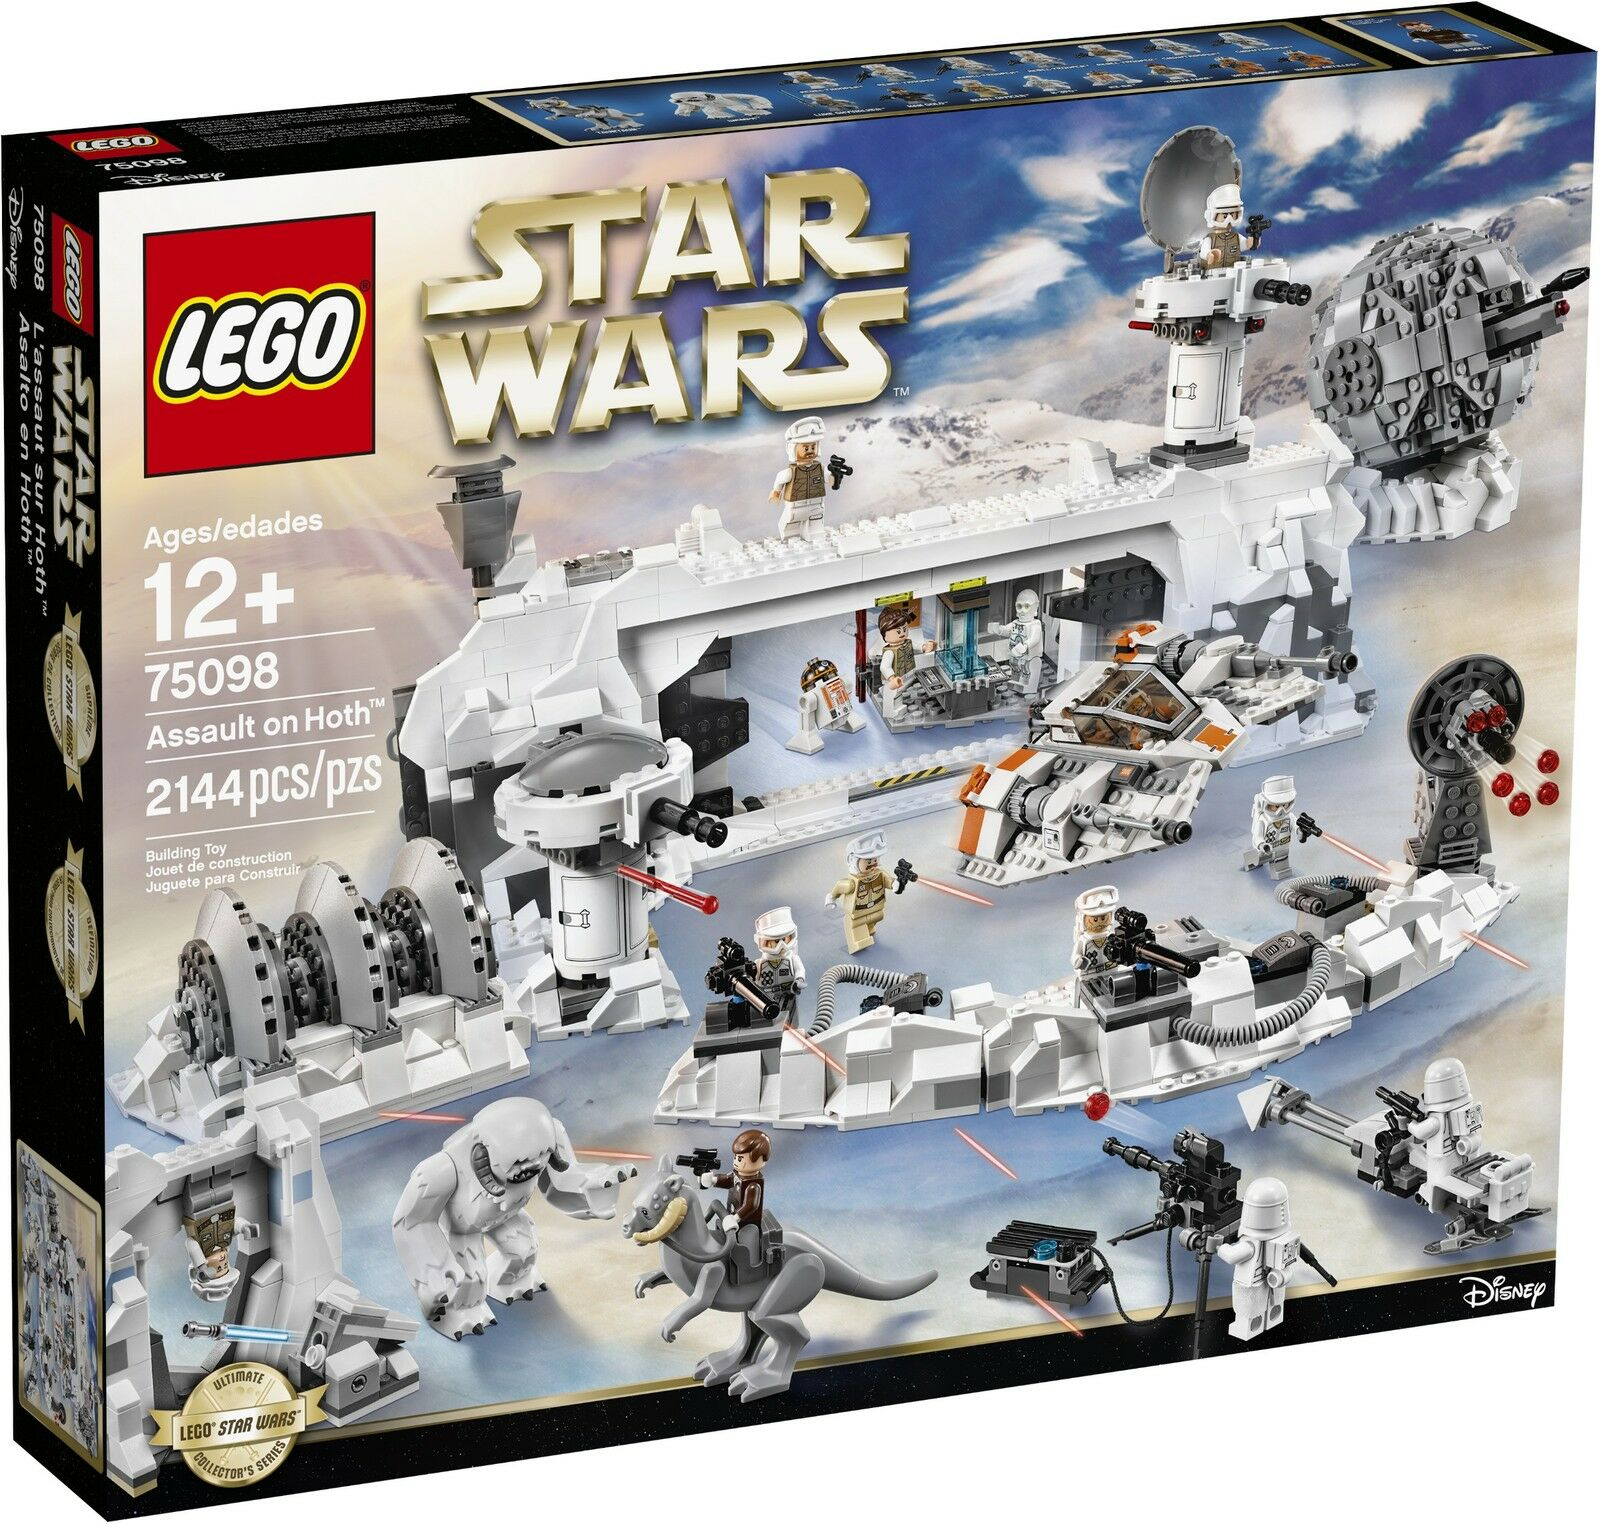 LEGO ® Star Wars ™ 75098 Assault on Hoth ™ NUOVO OVP _ NEW MISB NRFB A-condition!